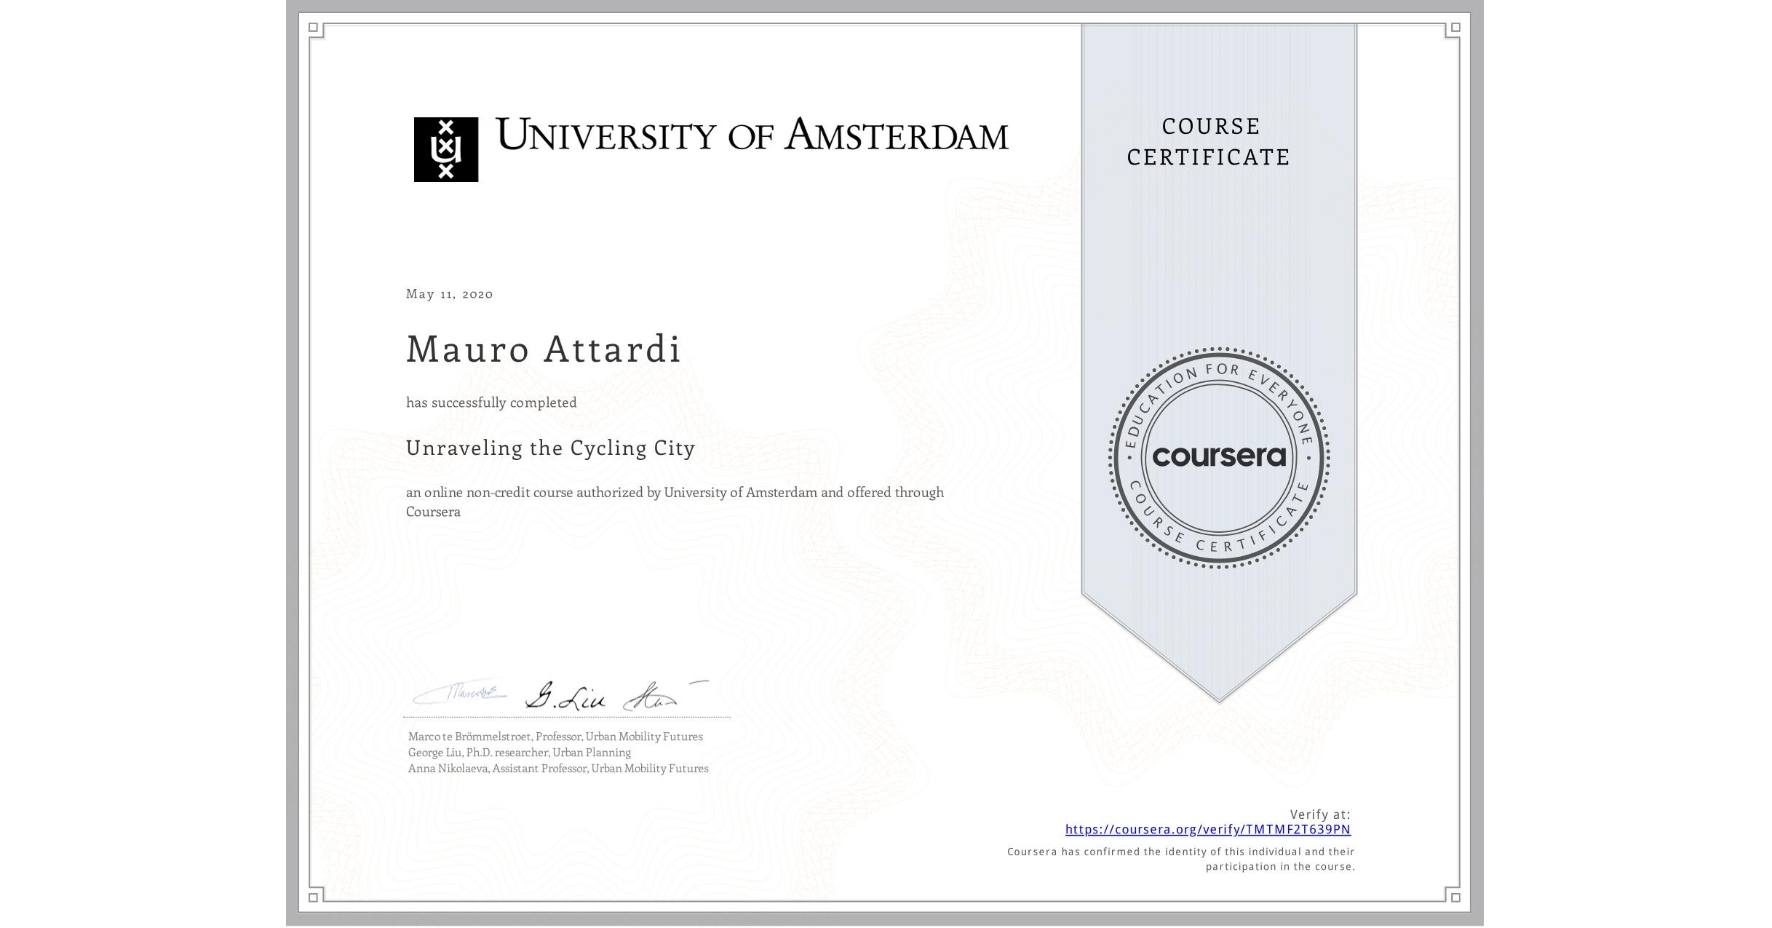 View certificate for Mauro Attardi, Unraveling the Cycling City, an online non-credit course authorized by University of Amsterdam and offered through Coursera